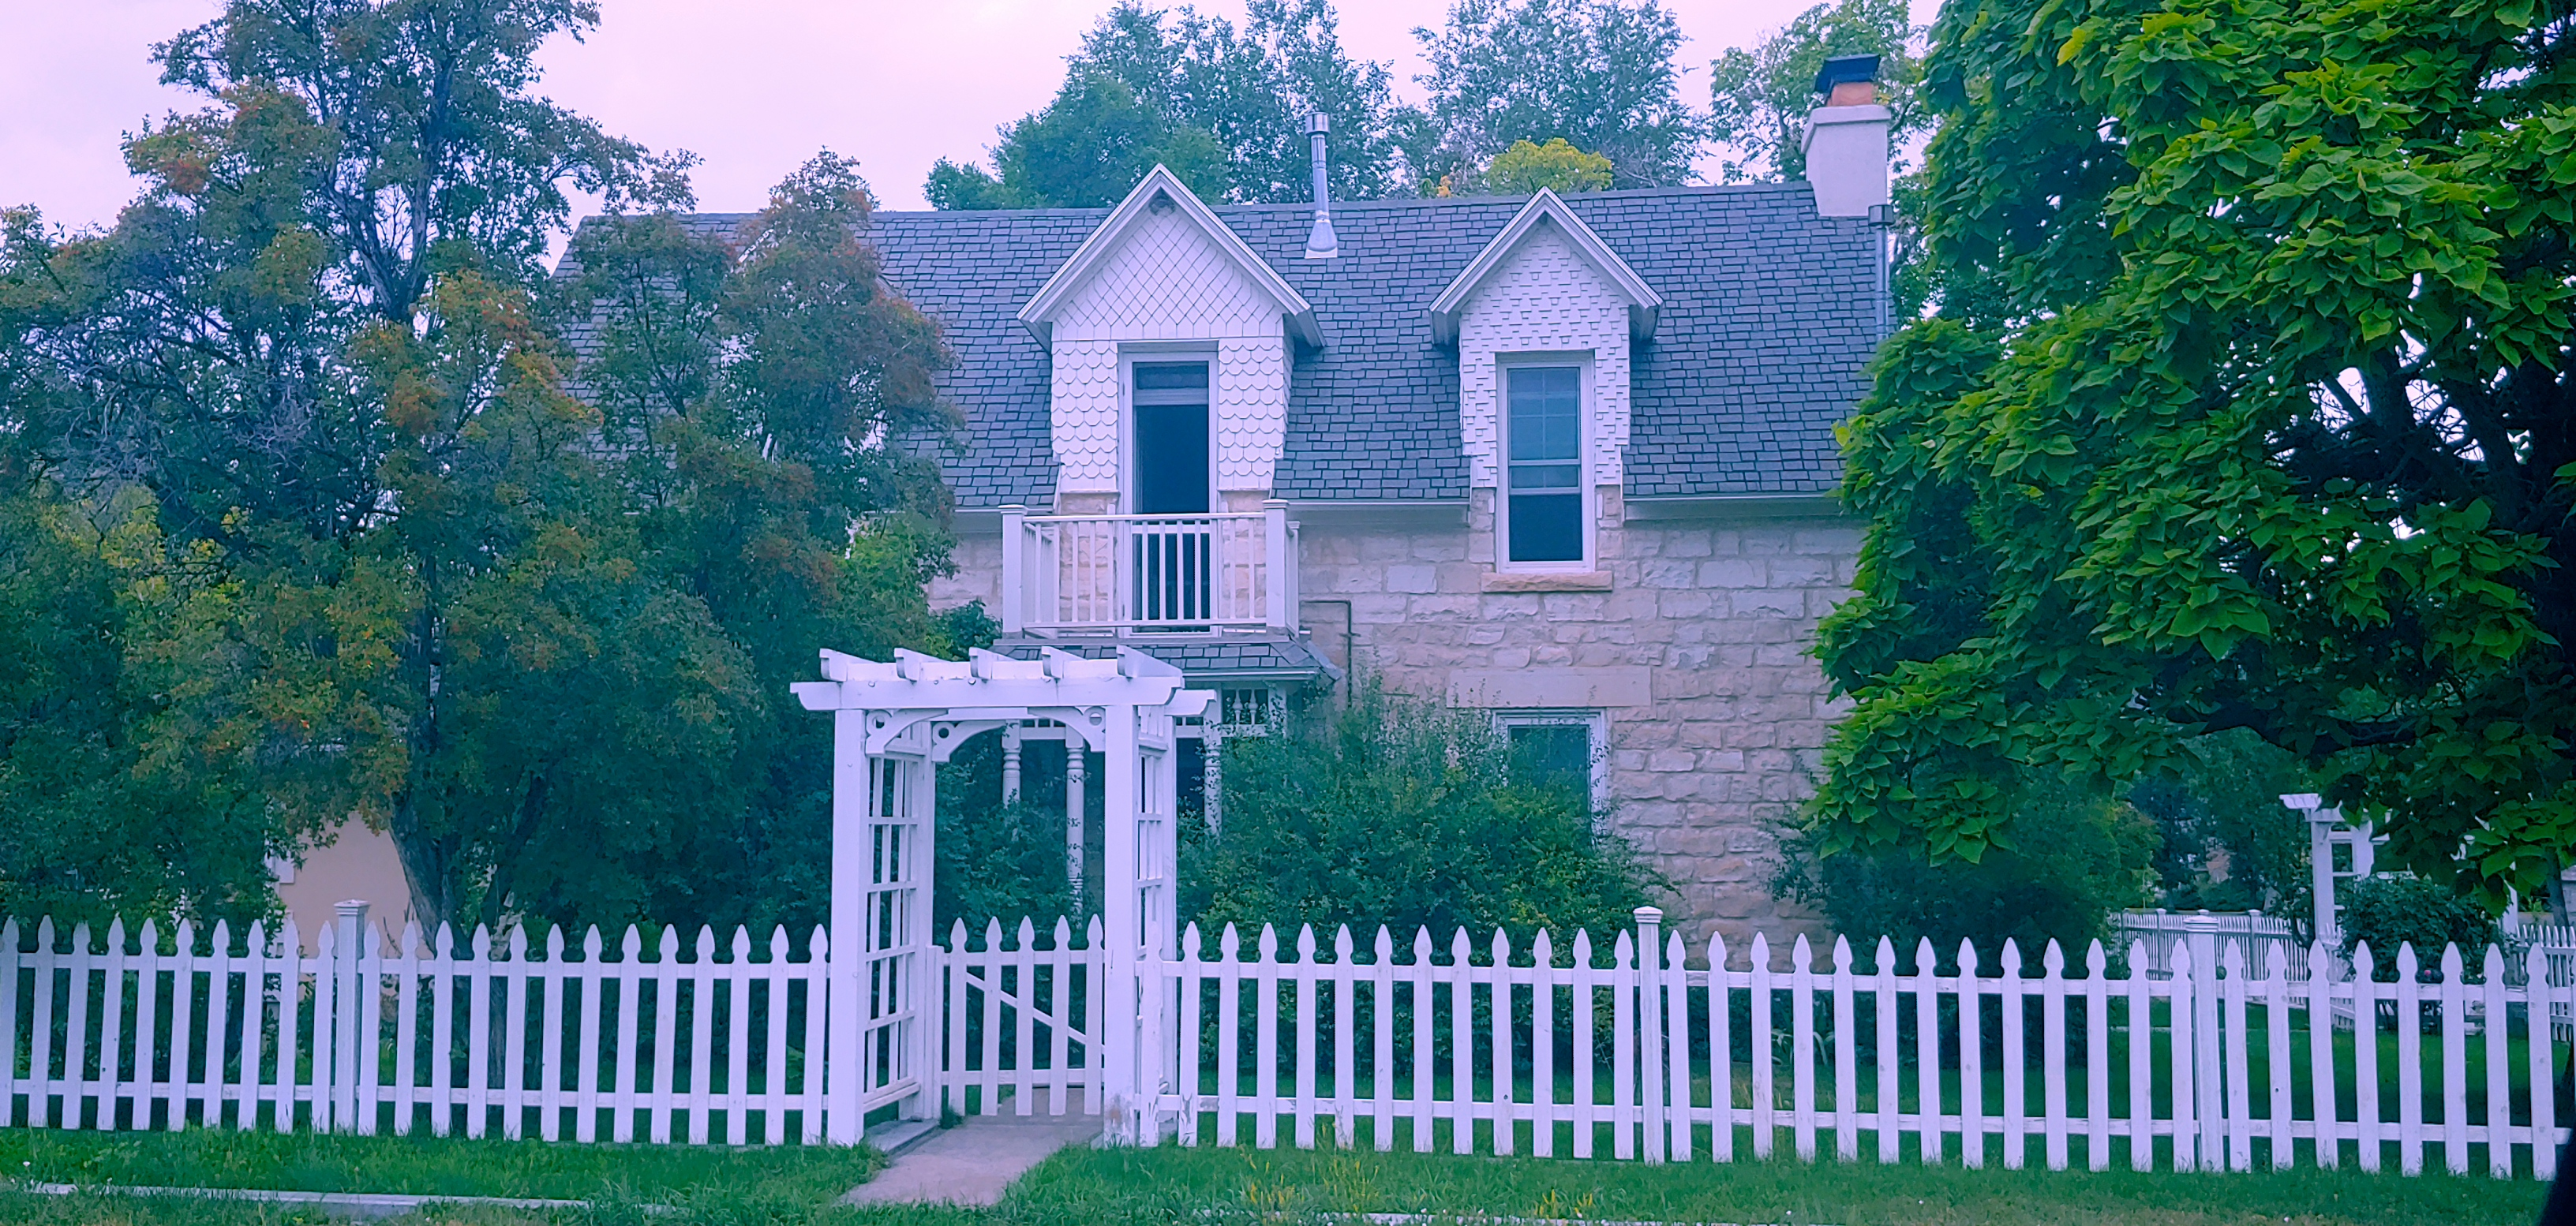 Stone home with white picket fence and trees